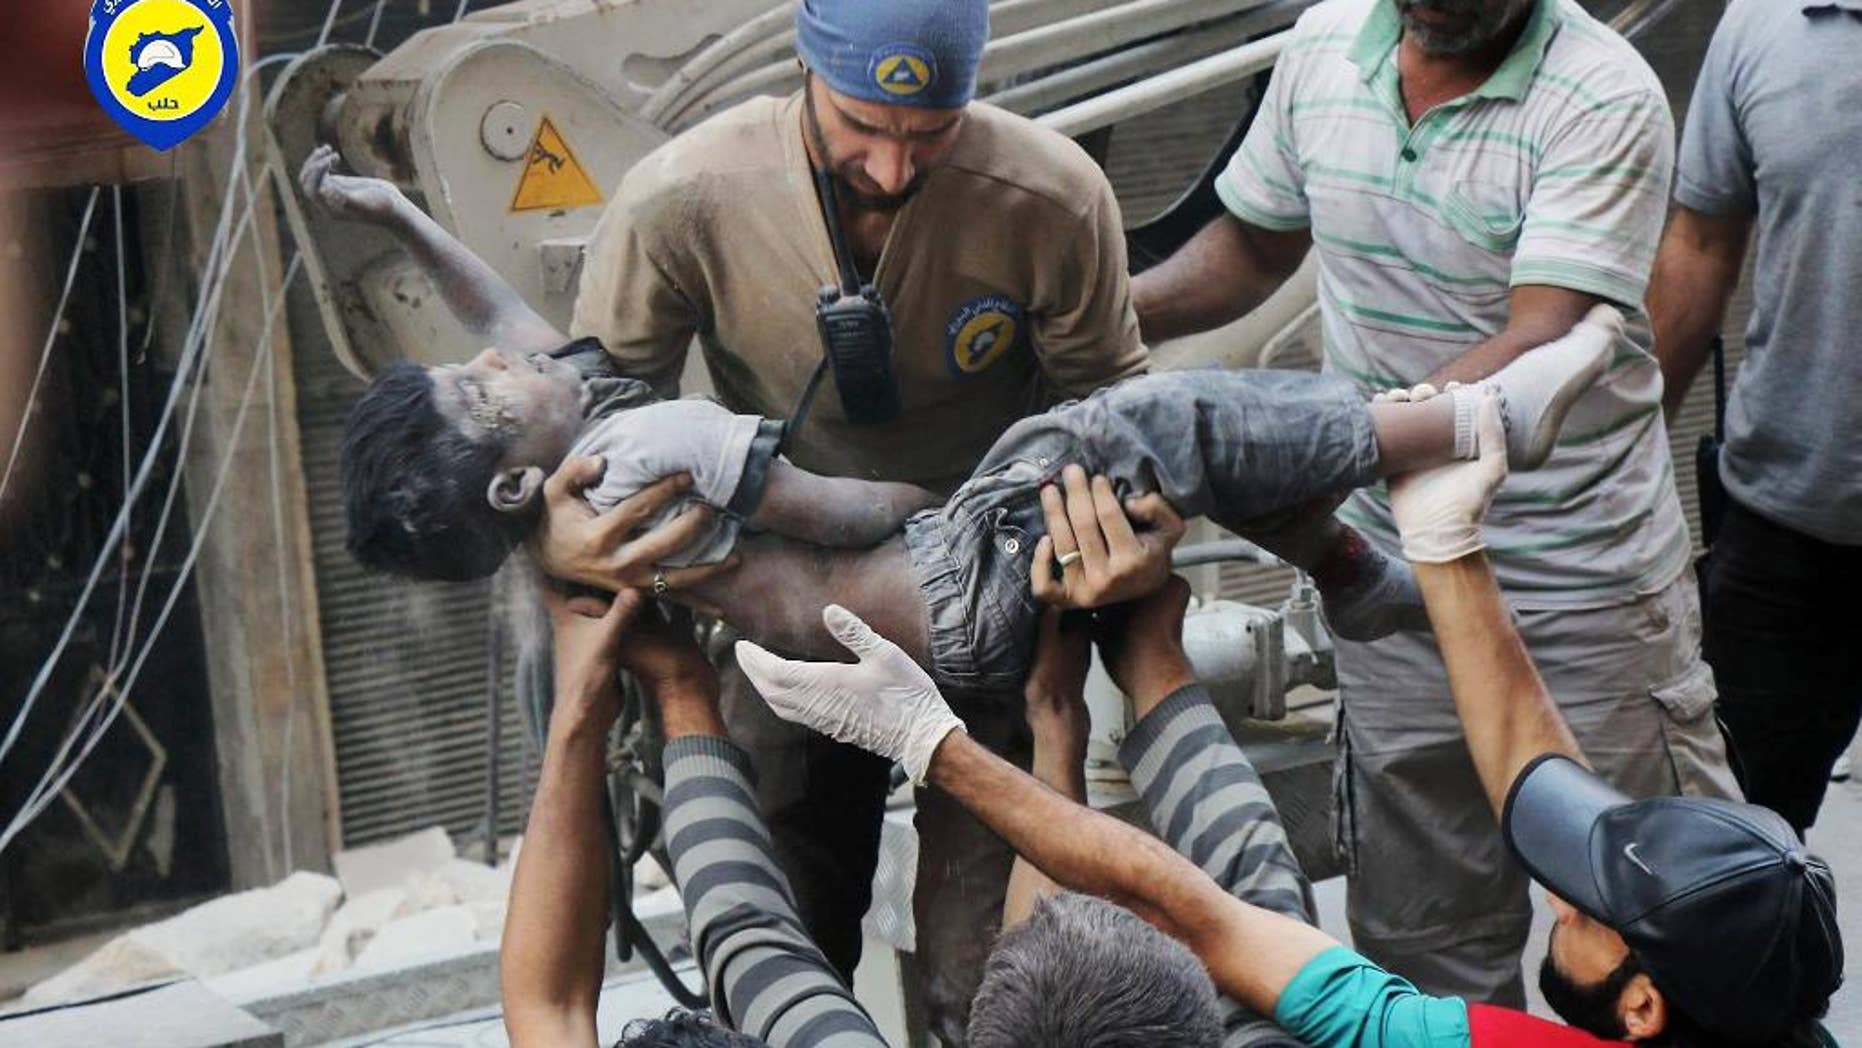 This Tuesday, Sept. 27, 2016 photo, provided by the Syrian Civil Defense group known as the White Helmets, shows a Civil Defense worker carrying the body of a child after airstrikes hit al-Shaar neighborhood in Aleppo, Syria. Pope Francis has decried the assault on the Syrian city of Aleppo, saying those responsible for the bombing must answer to God. (Syrian Civil Defense White Helmets via AP)